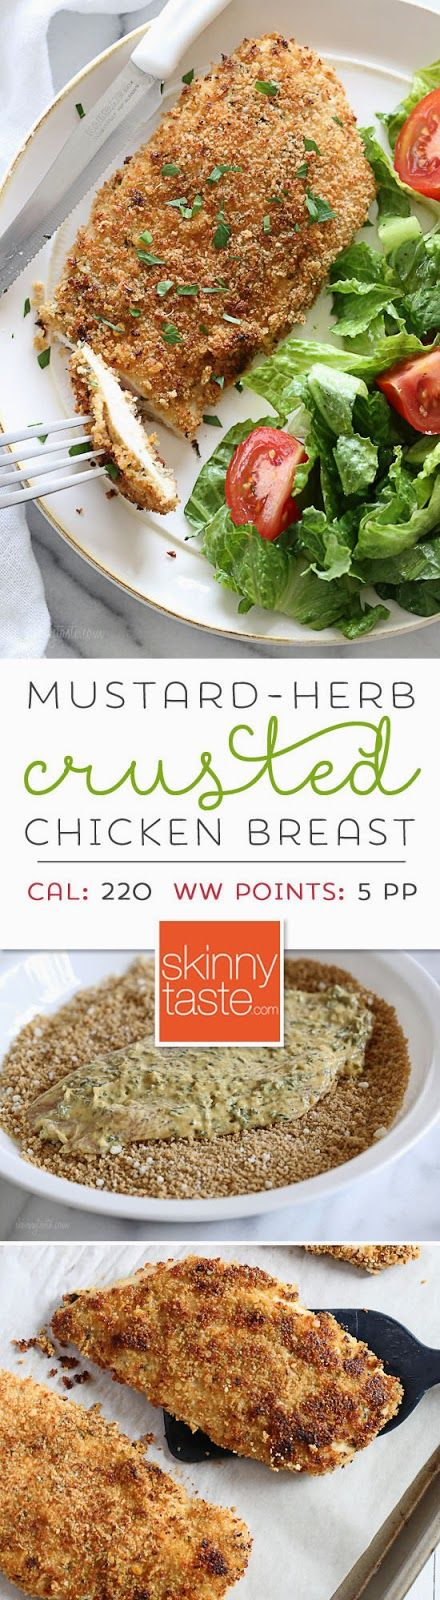 Mustard Herb Crusted Chicken Breasts | Salts, Olives and ...